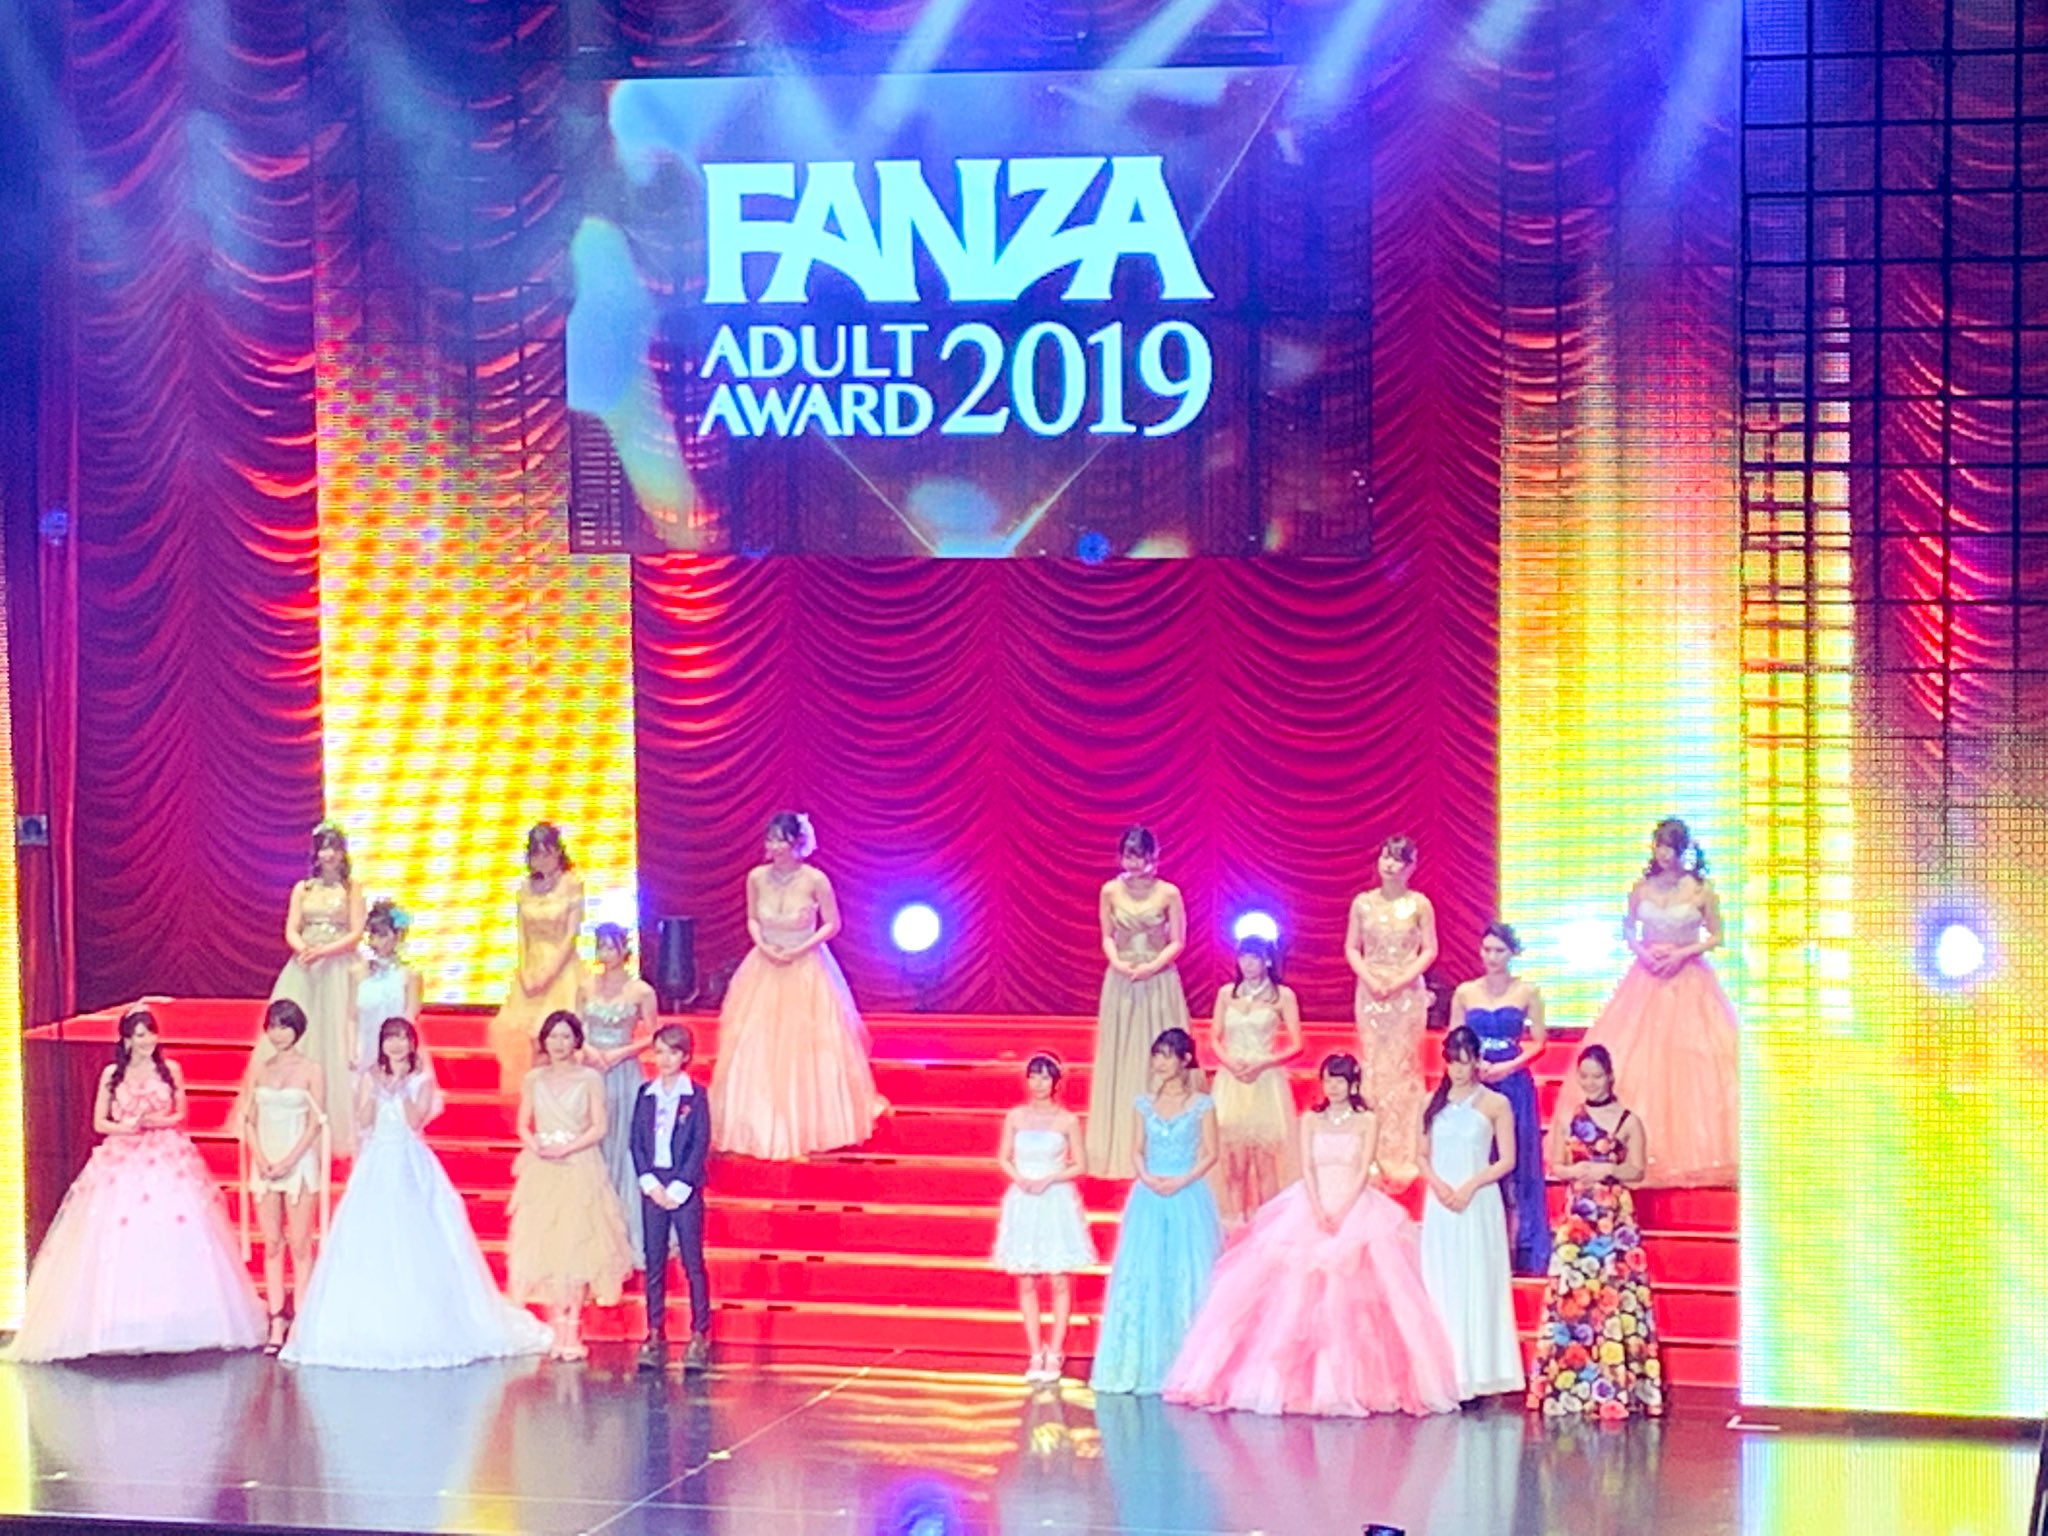 2019 Fanza adult awards results